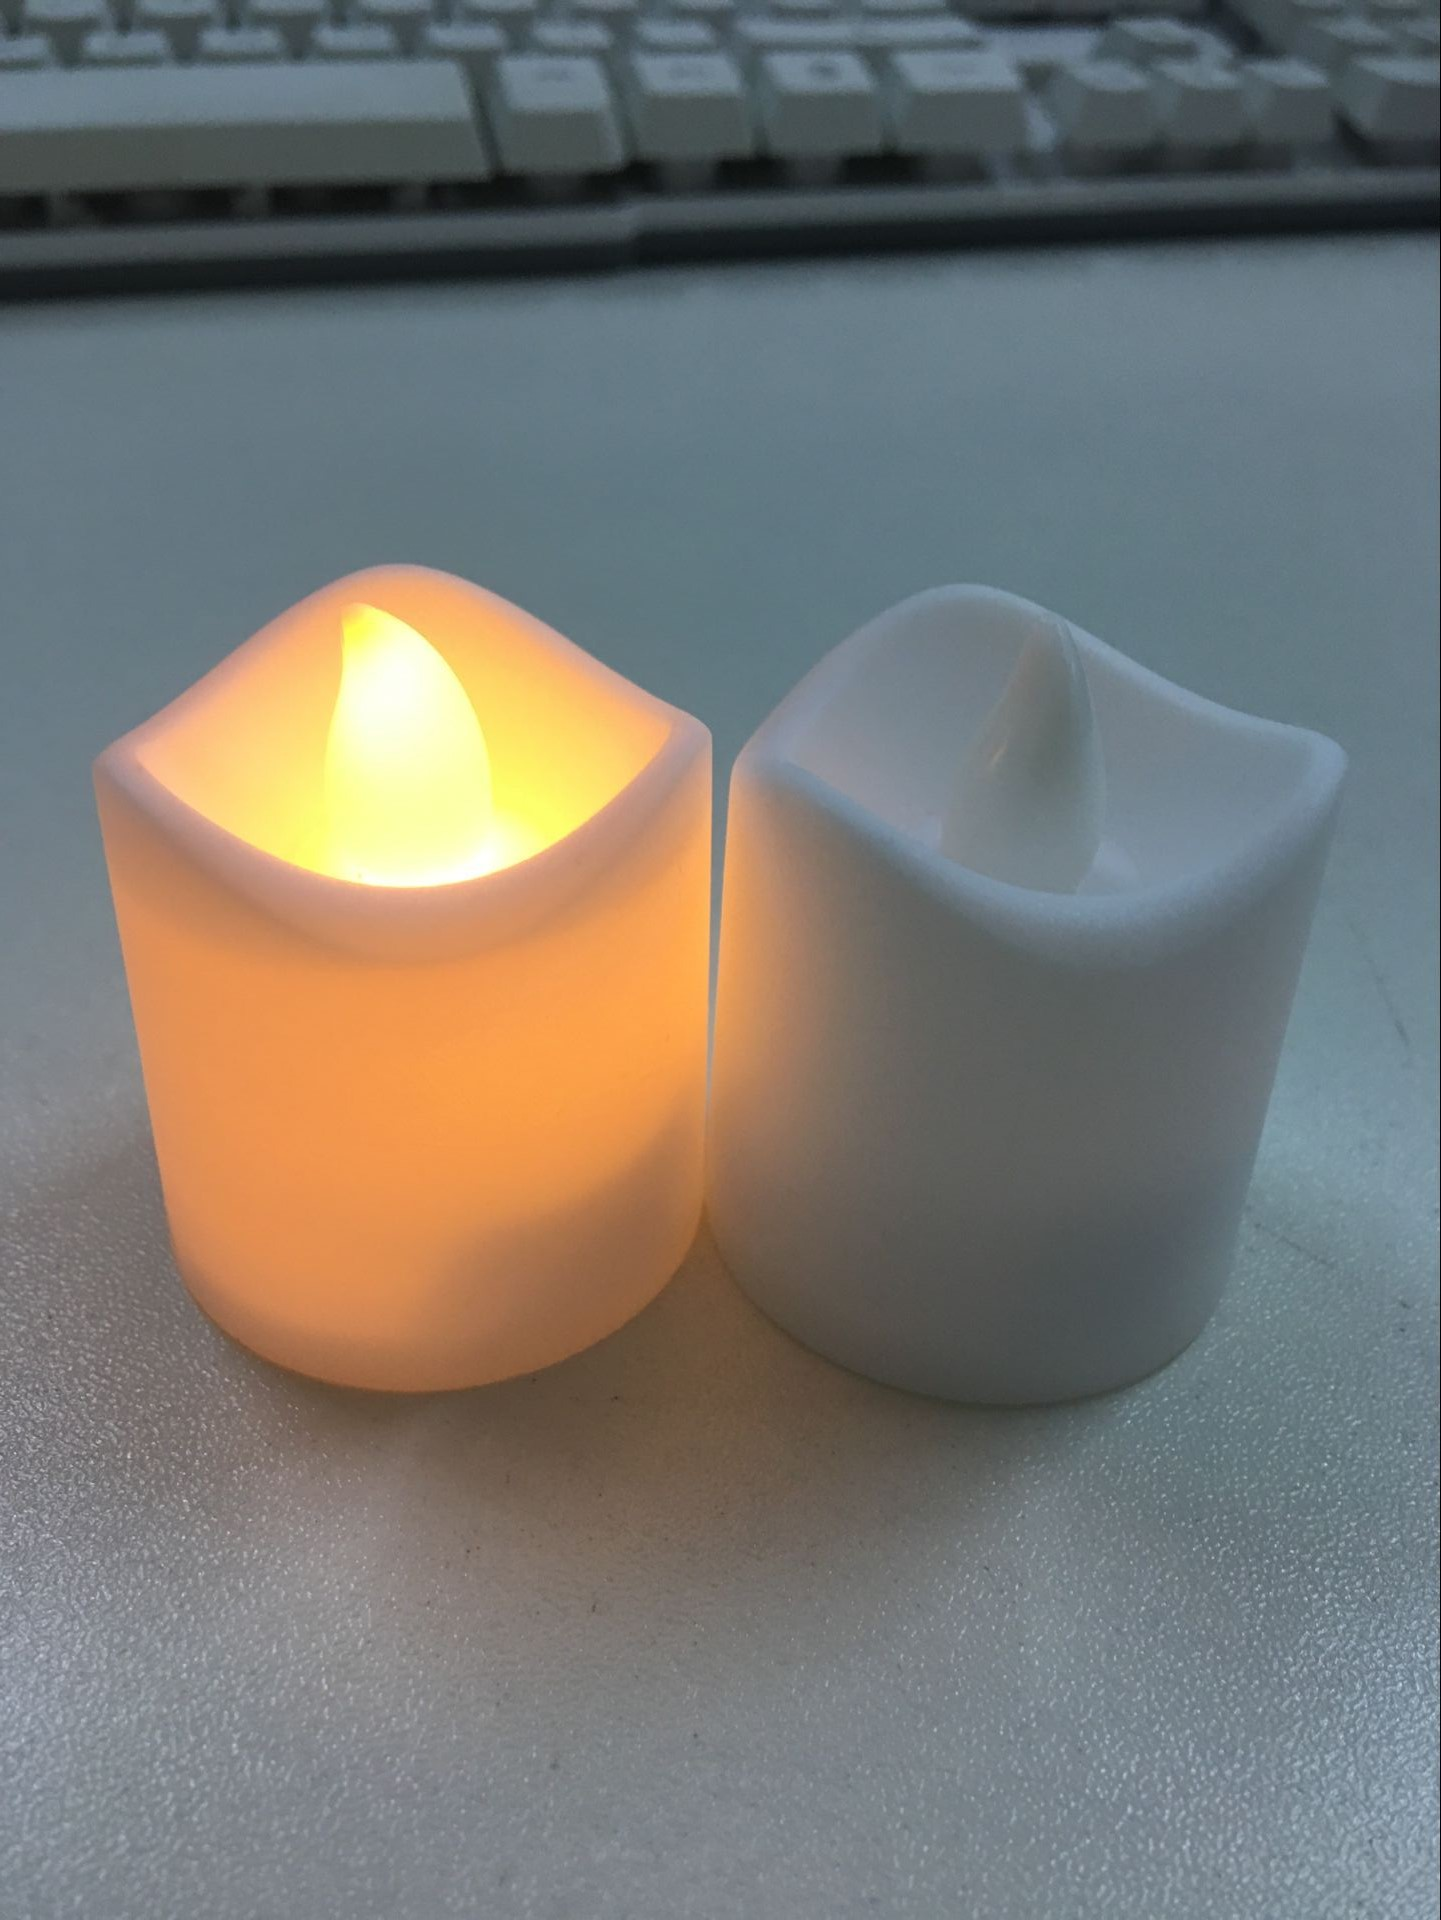 [EU Direct] Flameless LED Lights Candles Wavy Edge Electronic Candles for Wedding Party Home Decoration black_4.5 * 4 * 4